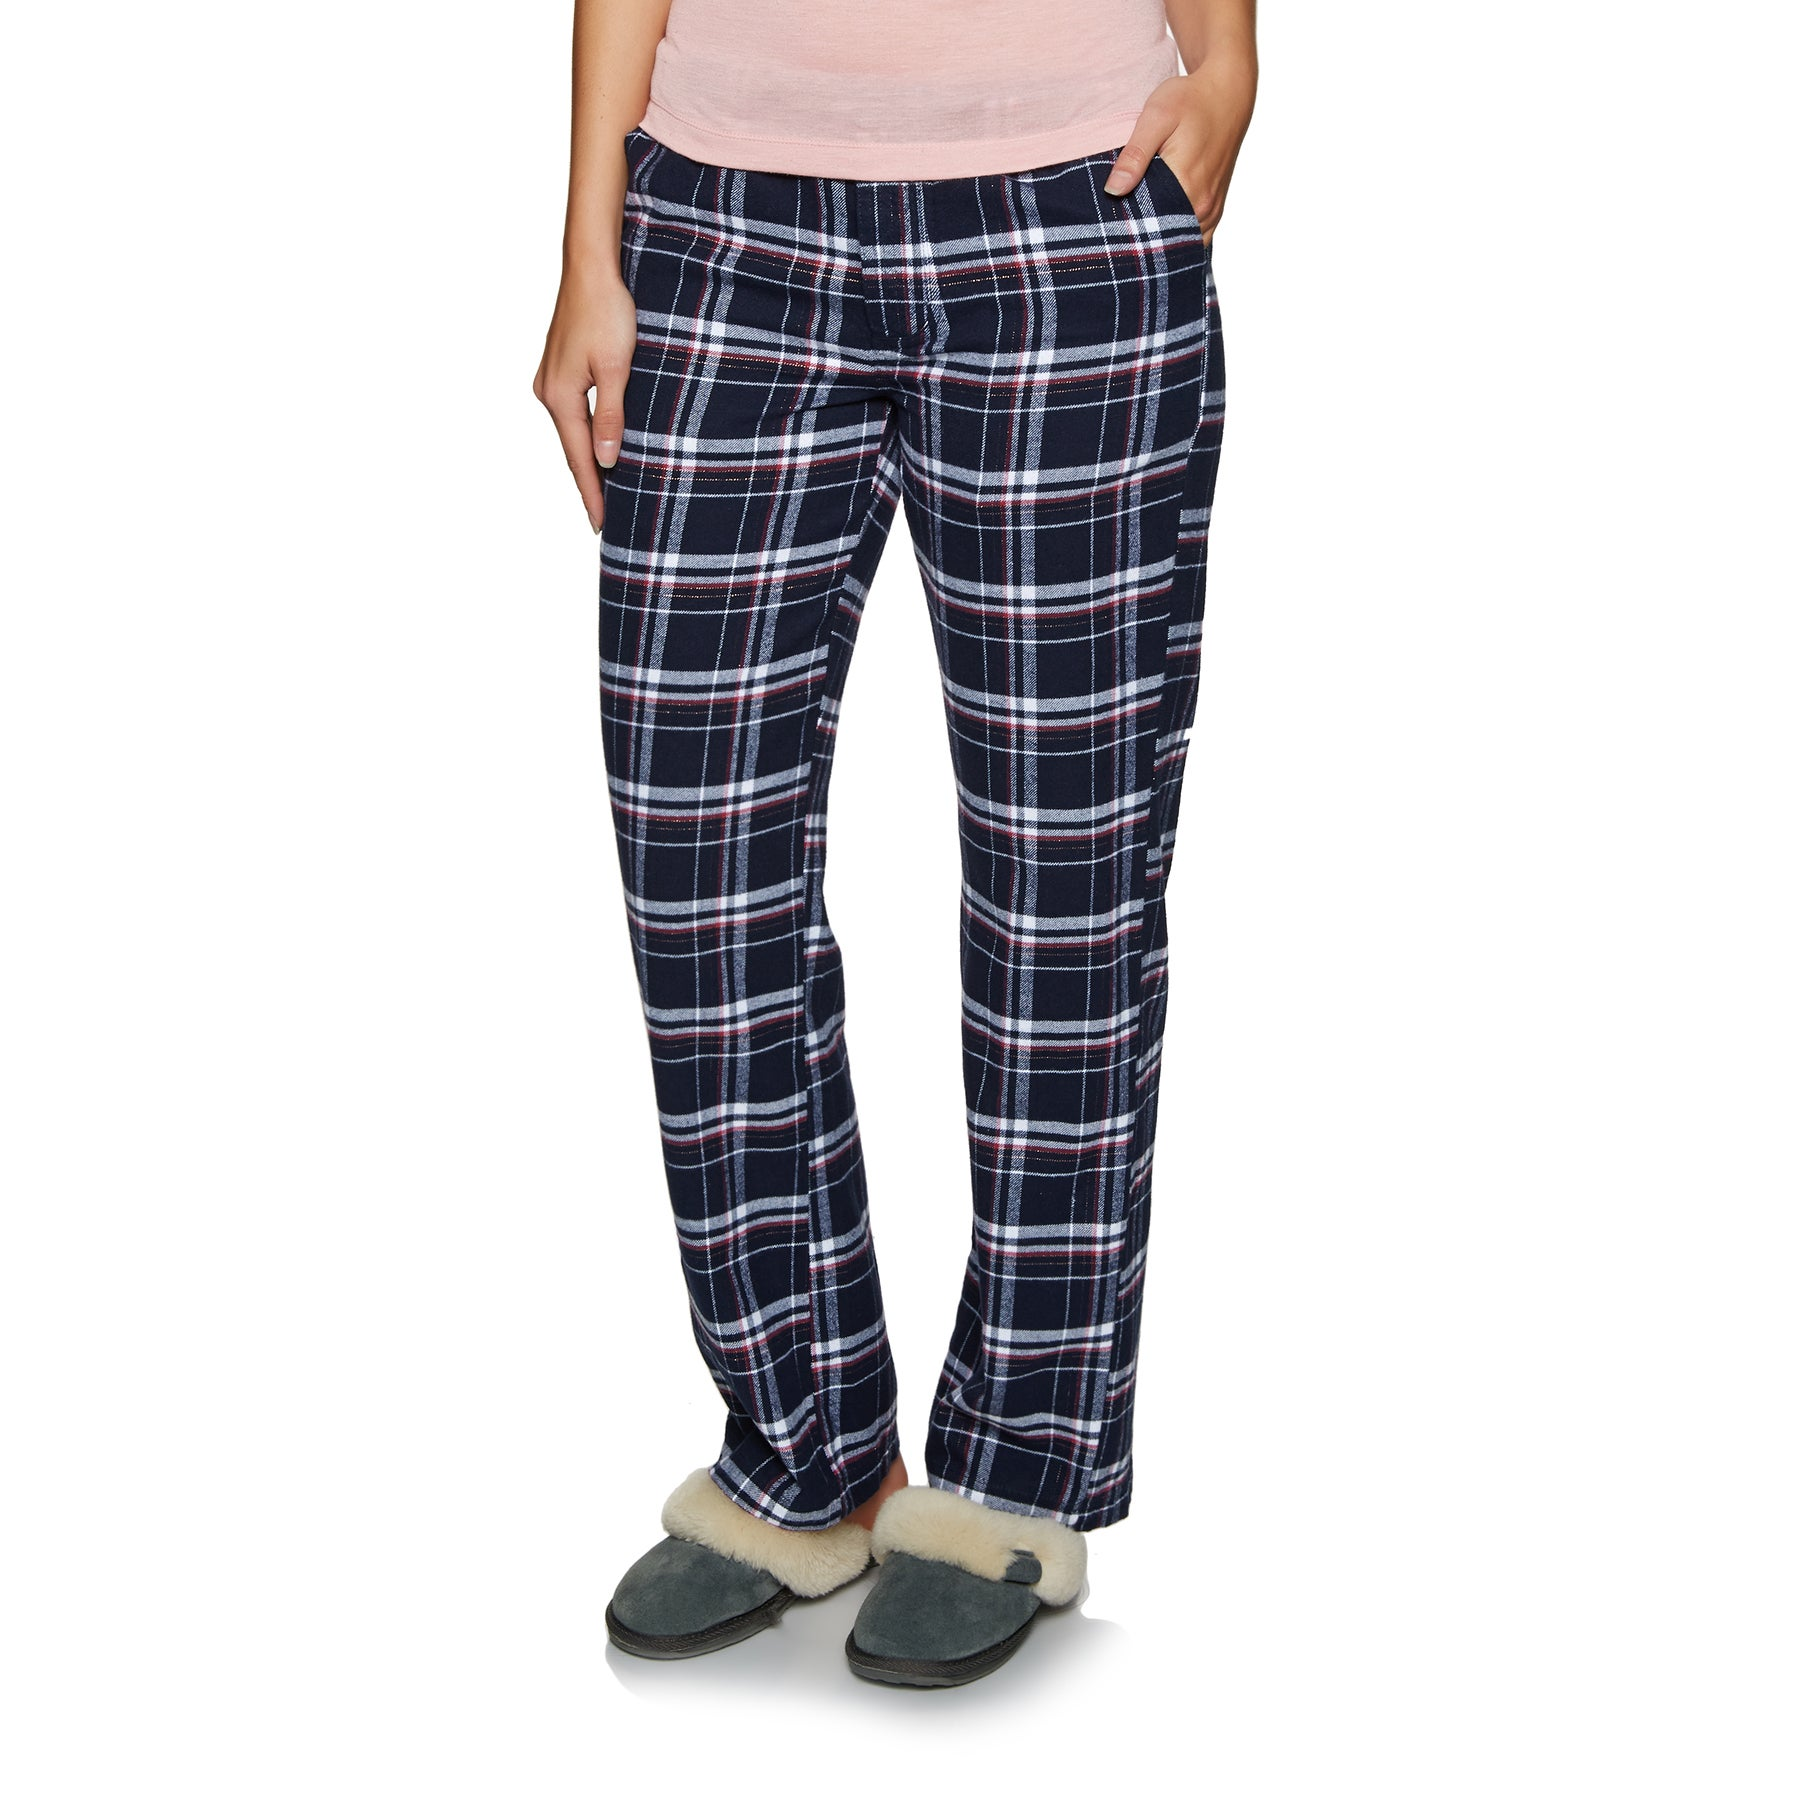 Superdry Millie Pant Womens Loungewear - Navy Check